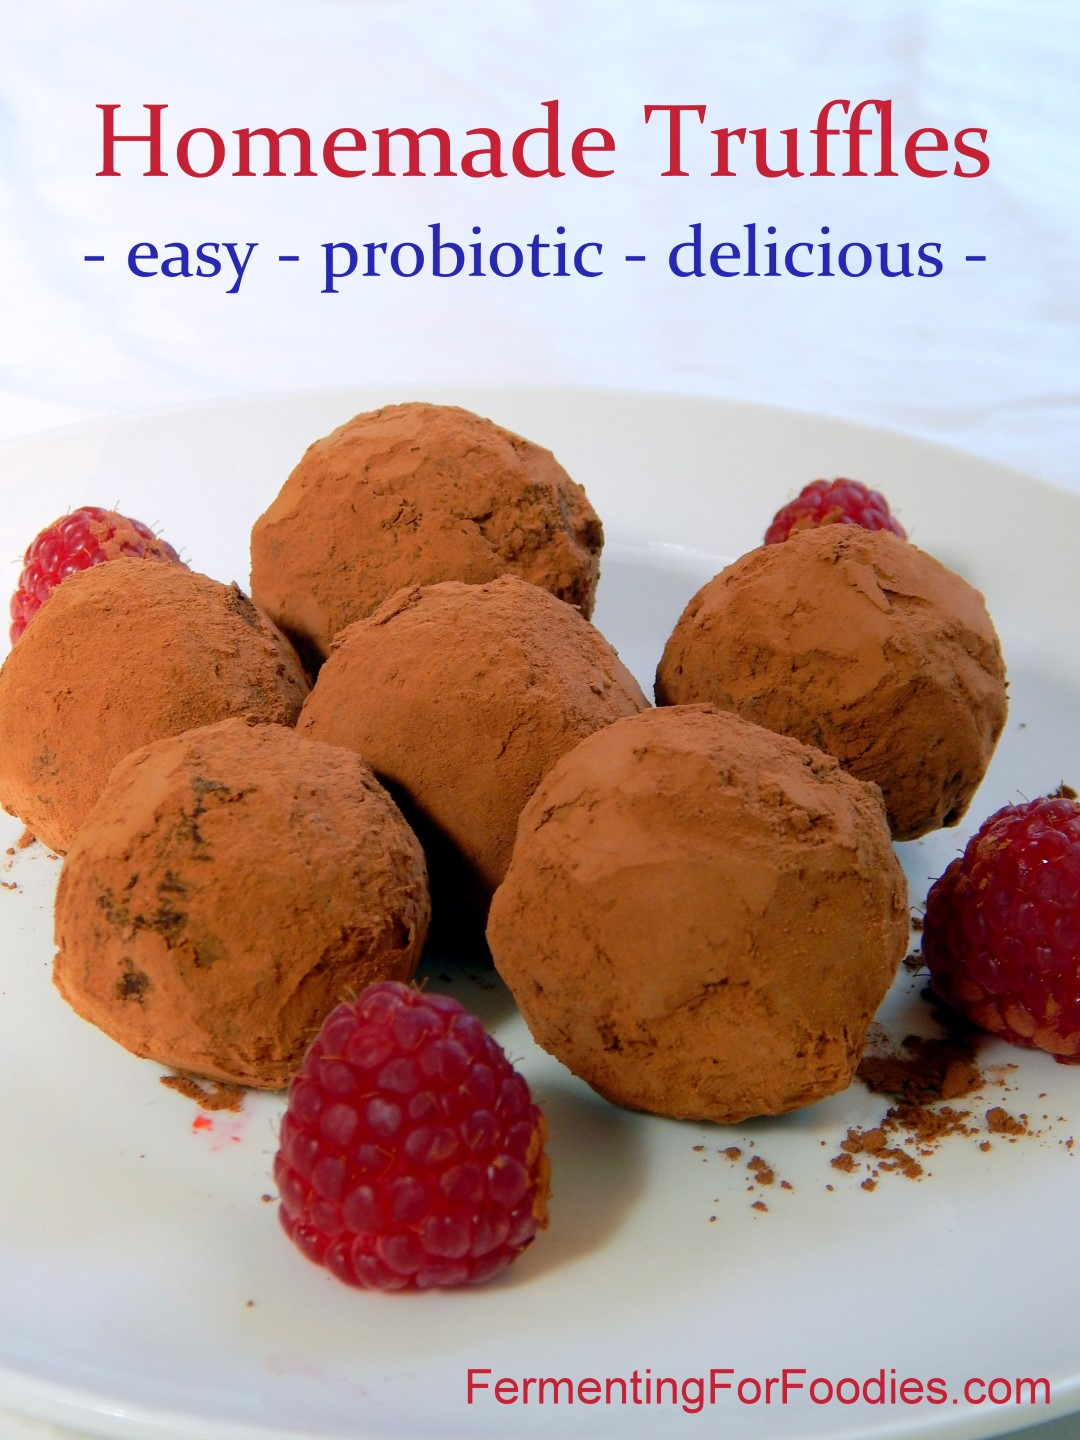 Super easy, 3 ingredient truffles. Probiotic, homemade, and healthy!